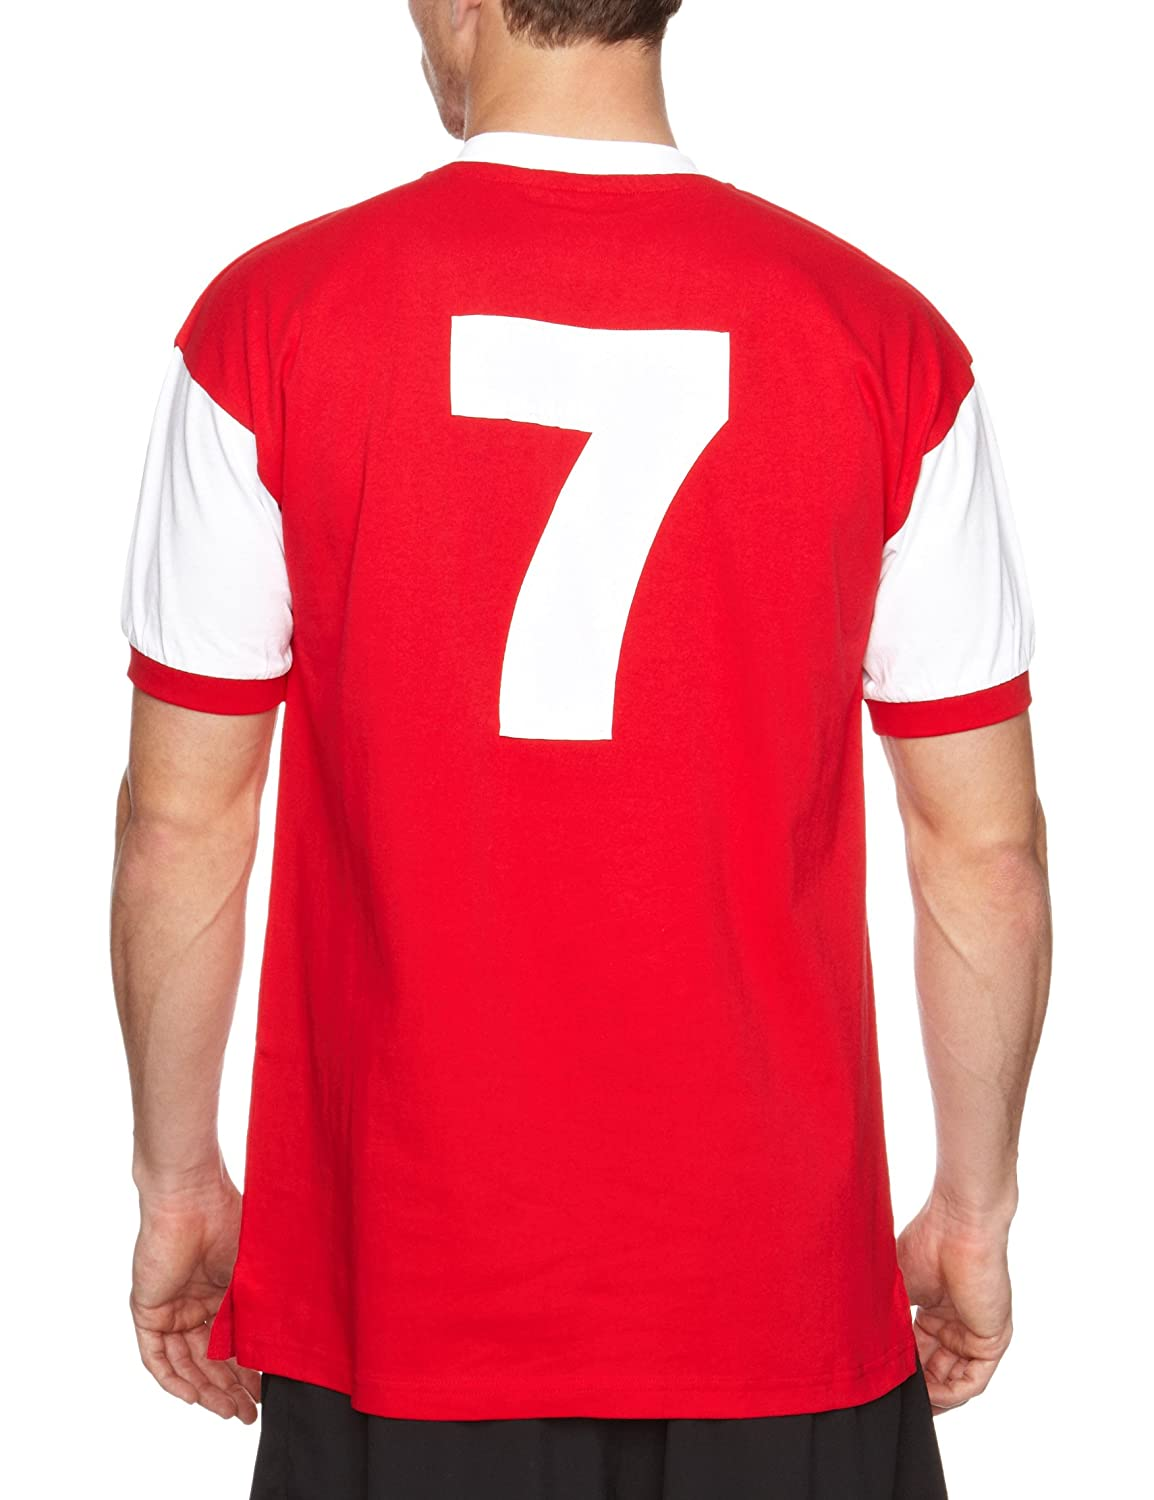 low priced d5fae 7ff5d Amazon.com: Arsenal 1971 Football Shirt: Clothing